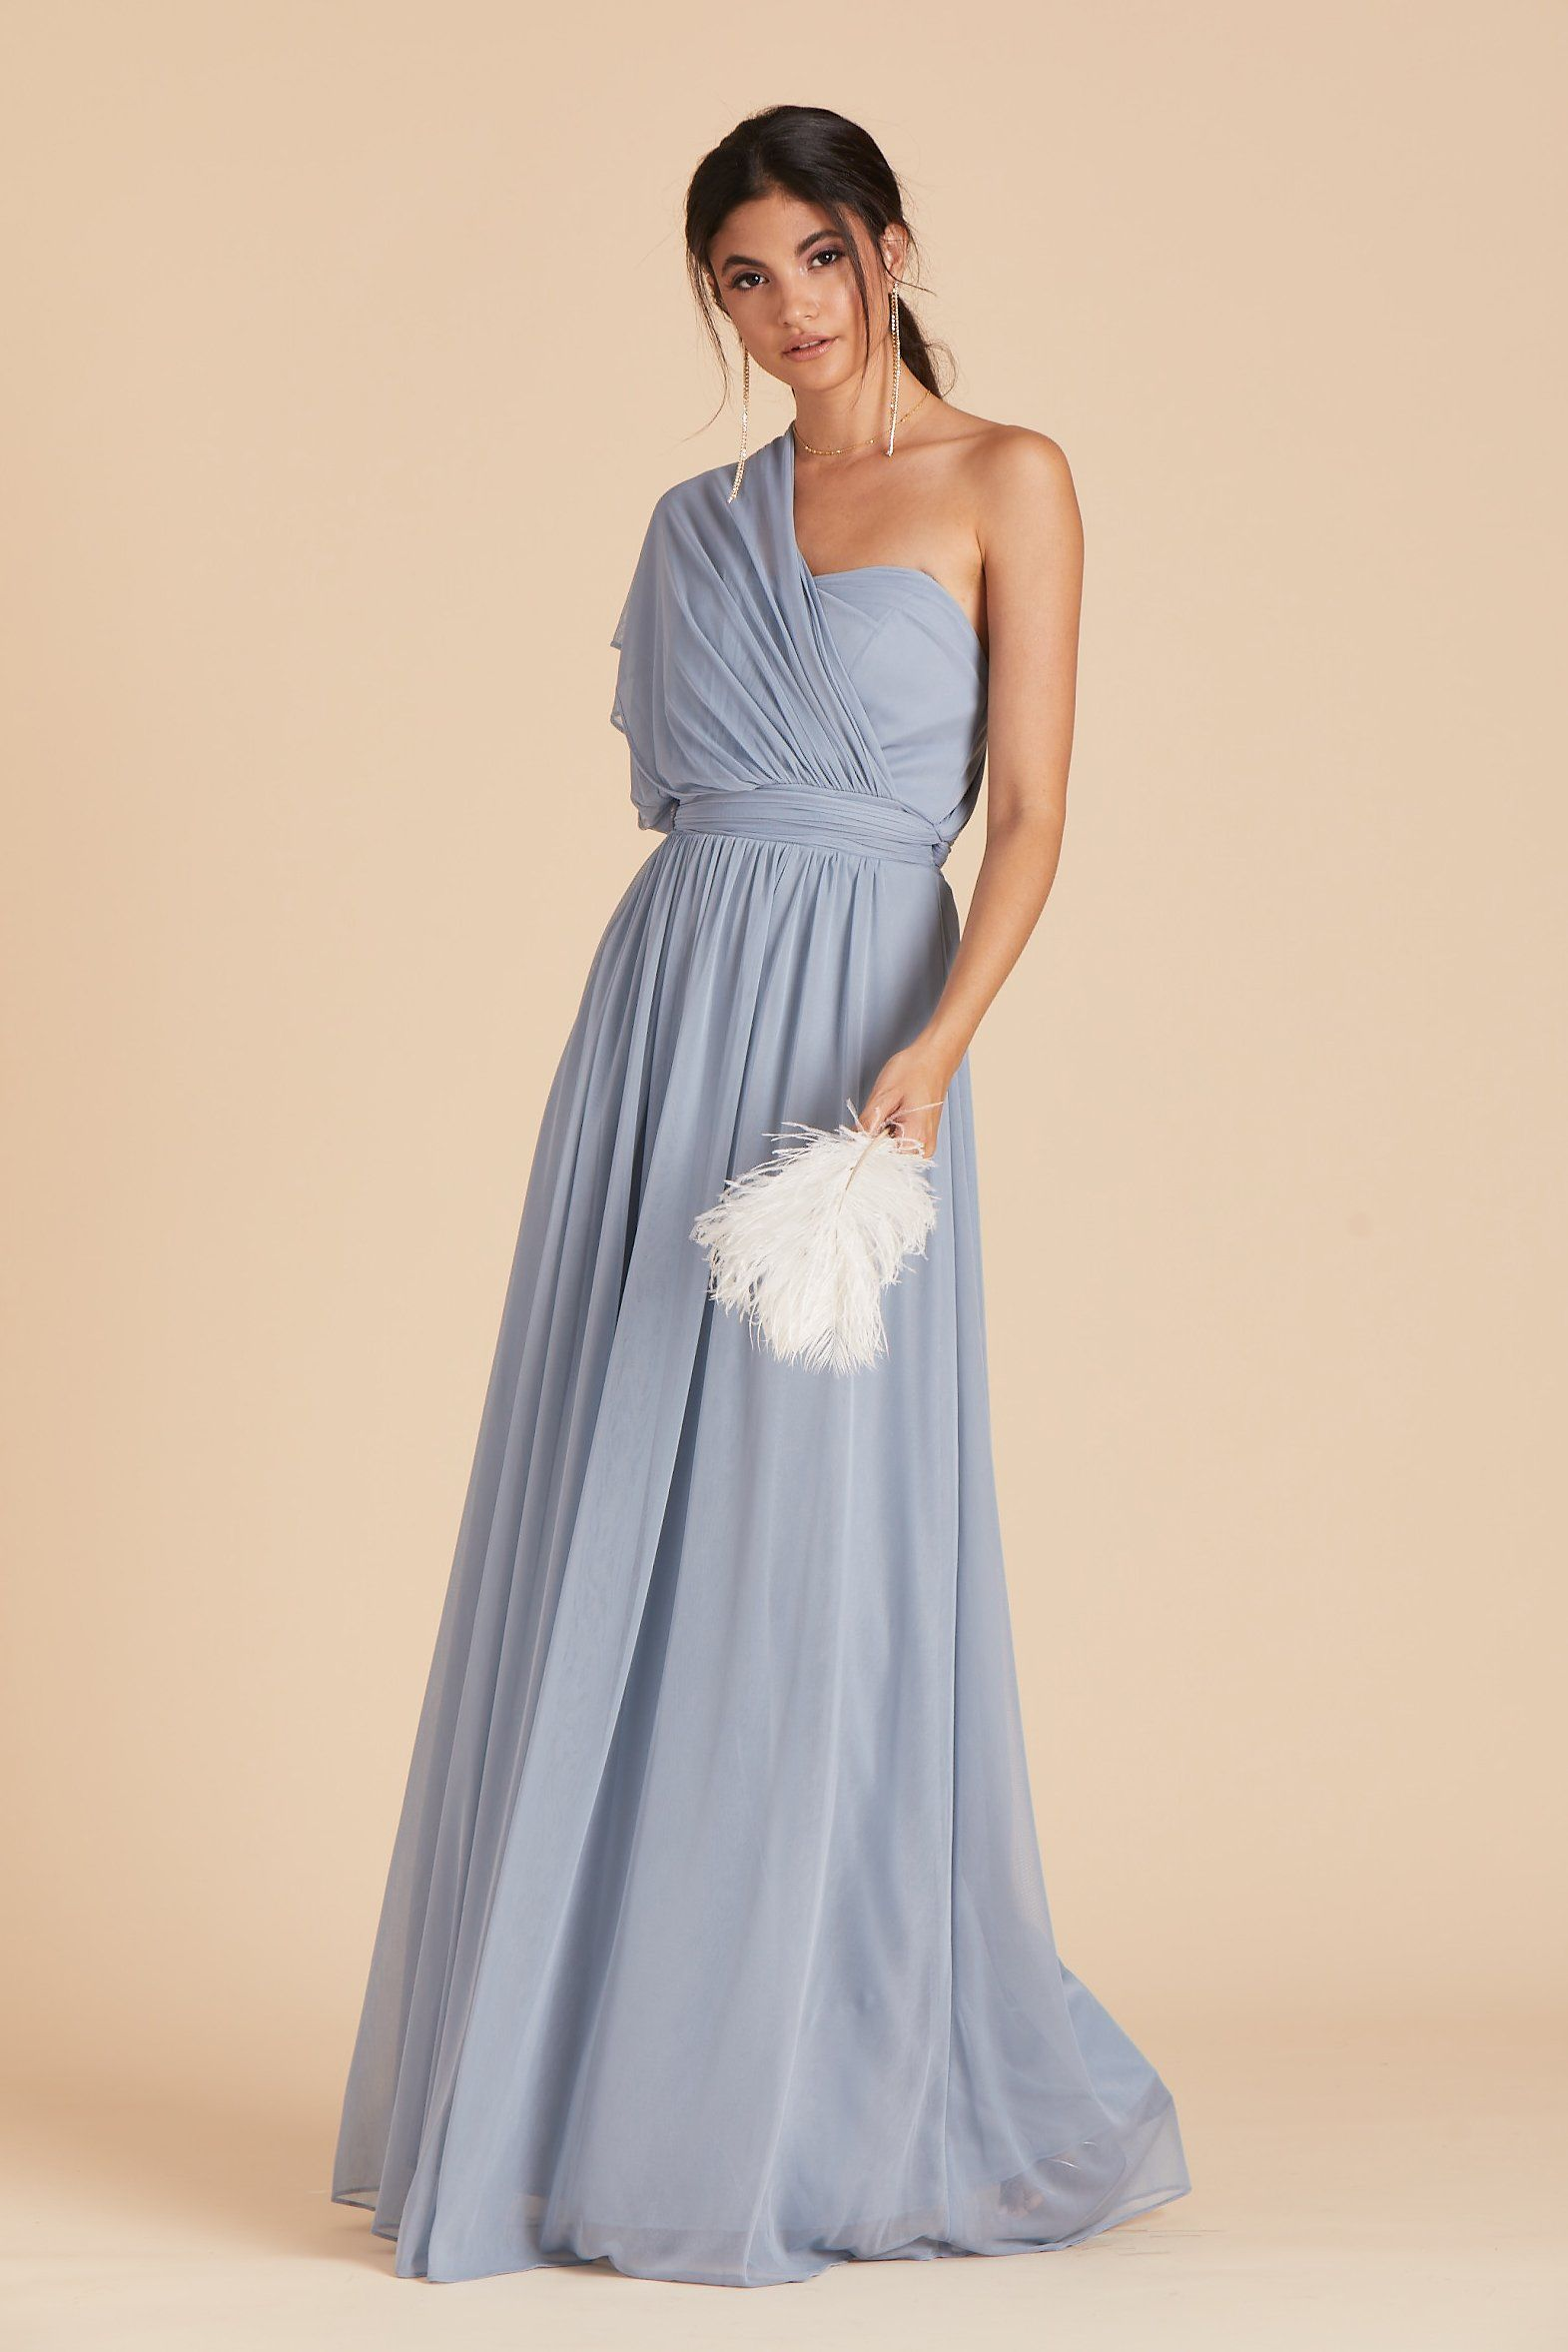 d6ab6628b396 Chicky Convertible Dress - Dusty Blue